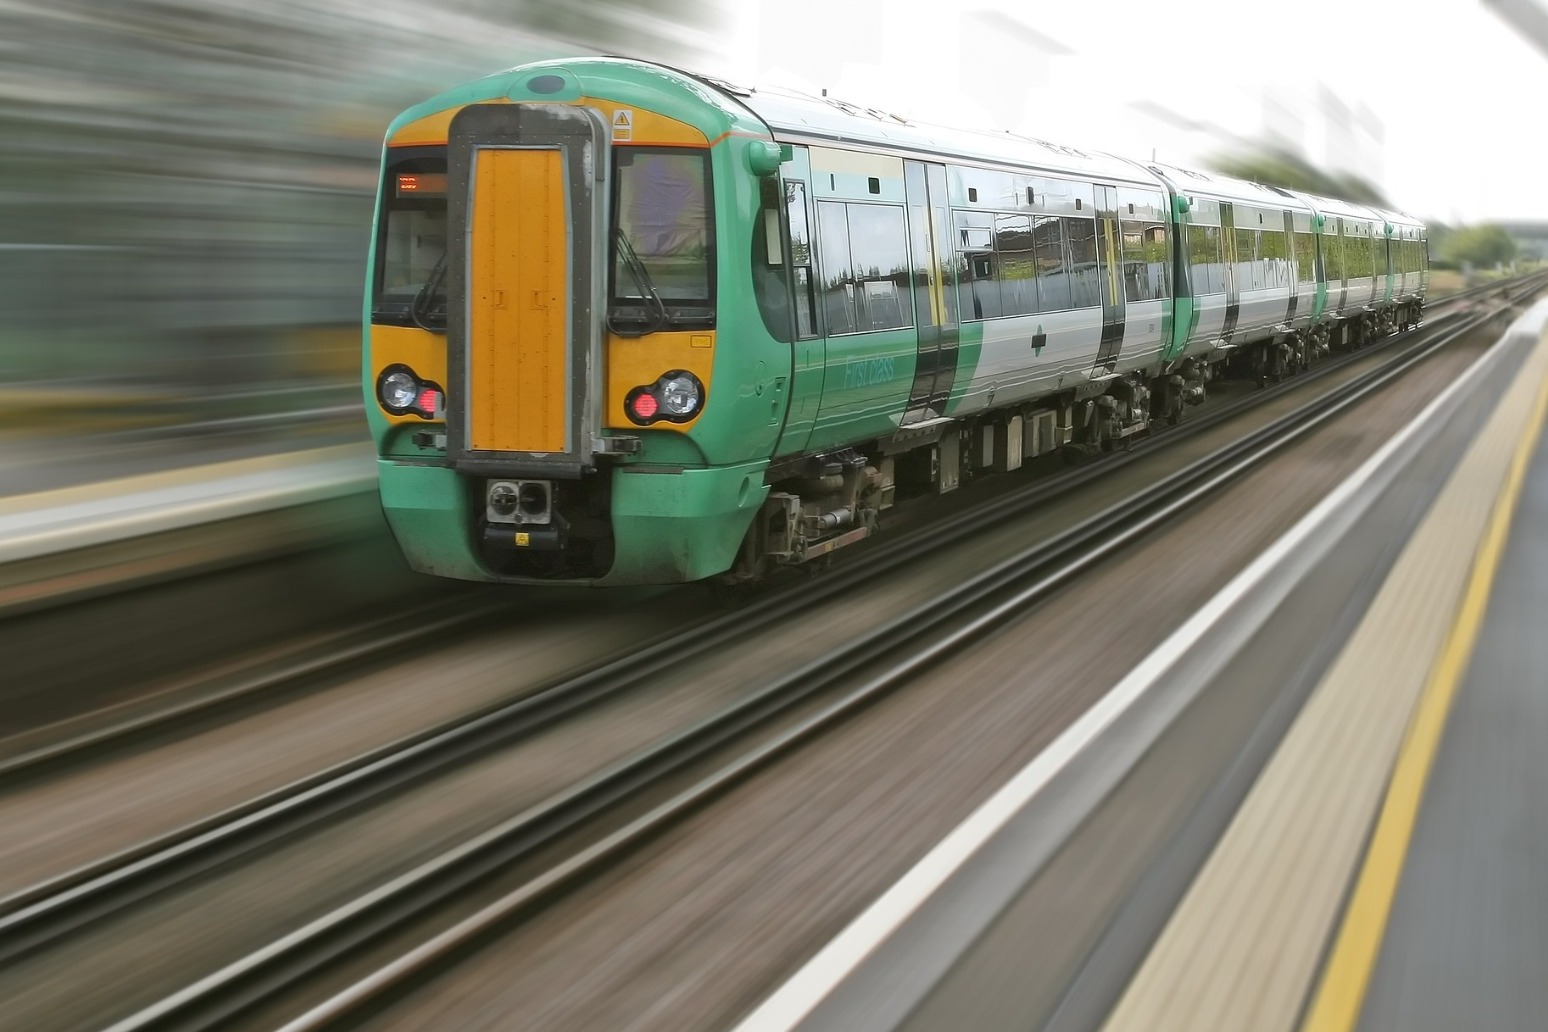 RISING UK TICKET SALES DRIVE TRAINLINE TO HIGHER REVENUES